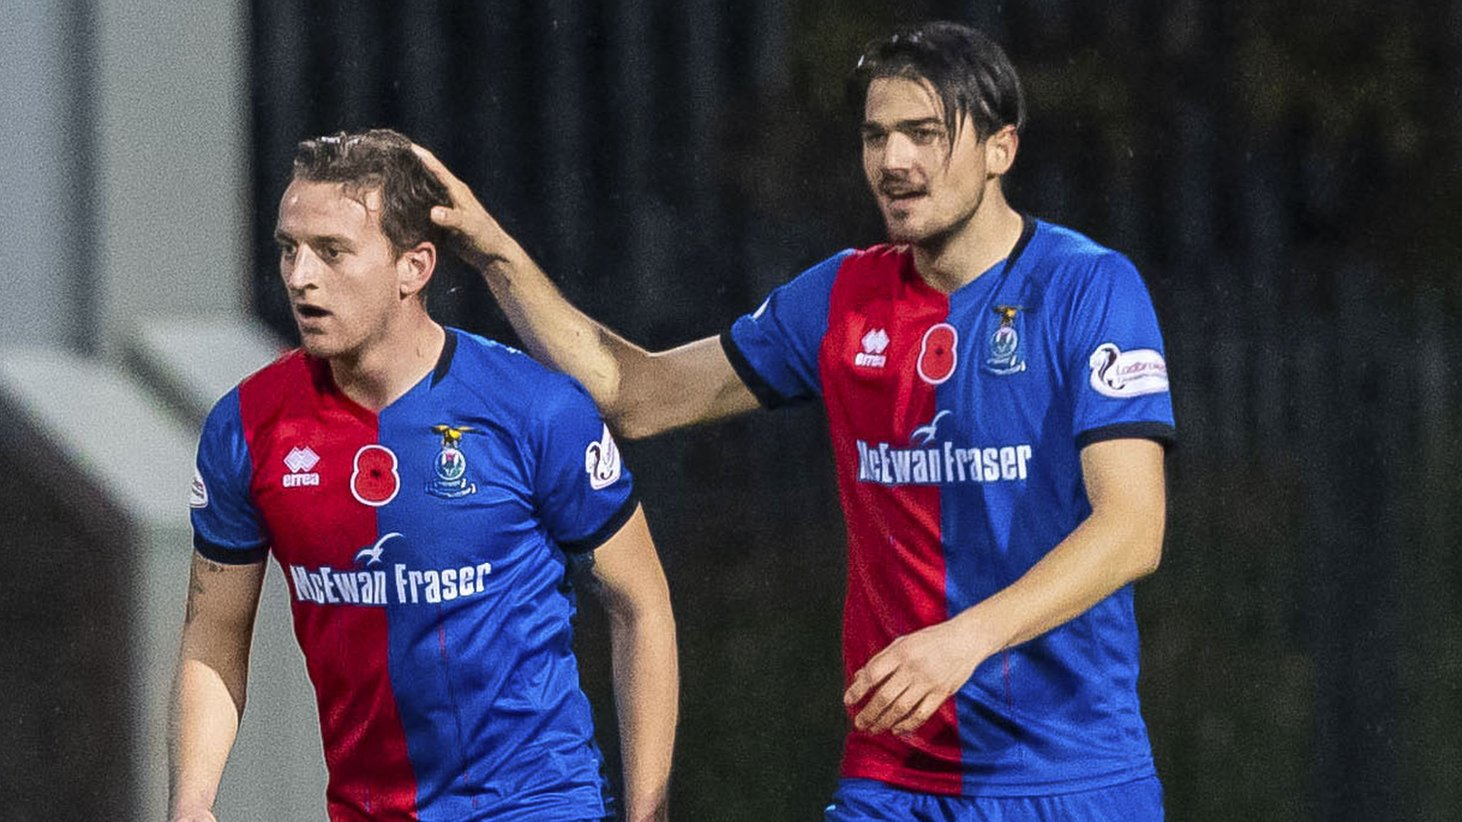 Partick Thistle 0-1 Inverness CT: Tom Walsh strike & penalty save seal win for Highlanders